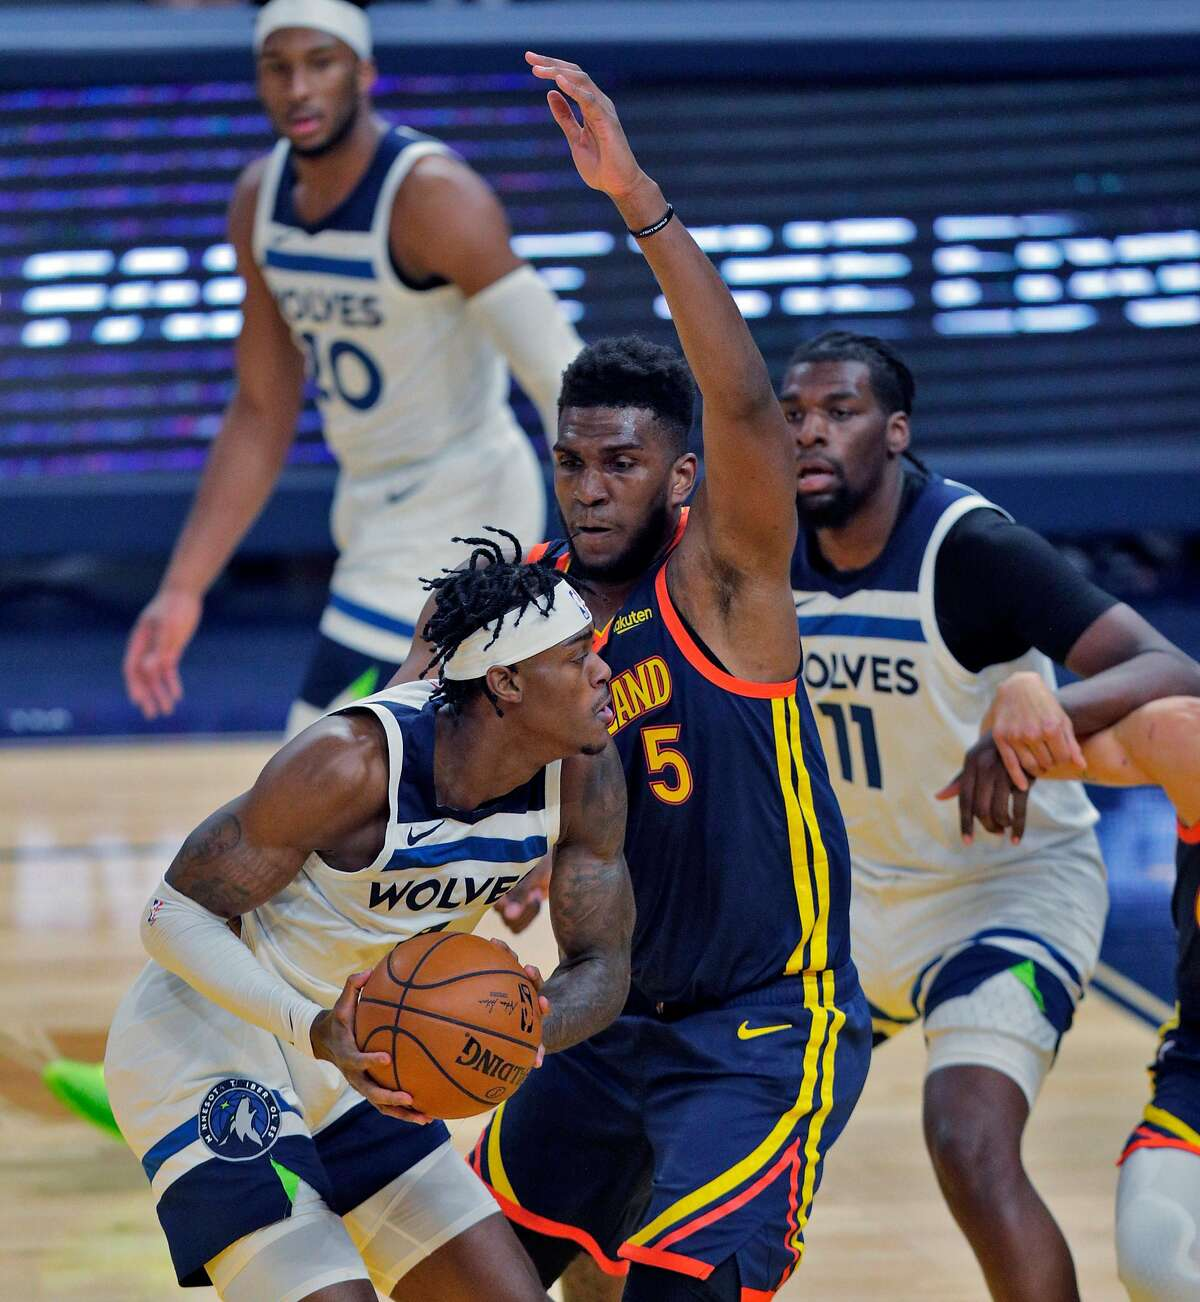 Kevon Looney (5) defends against Jarred Vanderbilt (8) in the first half as the Golden State Warriors played the Minnesota Timberwolves at Chase Center in San Francisco, Calif., on Monday, January 25, 2021.